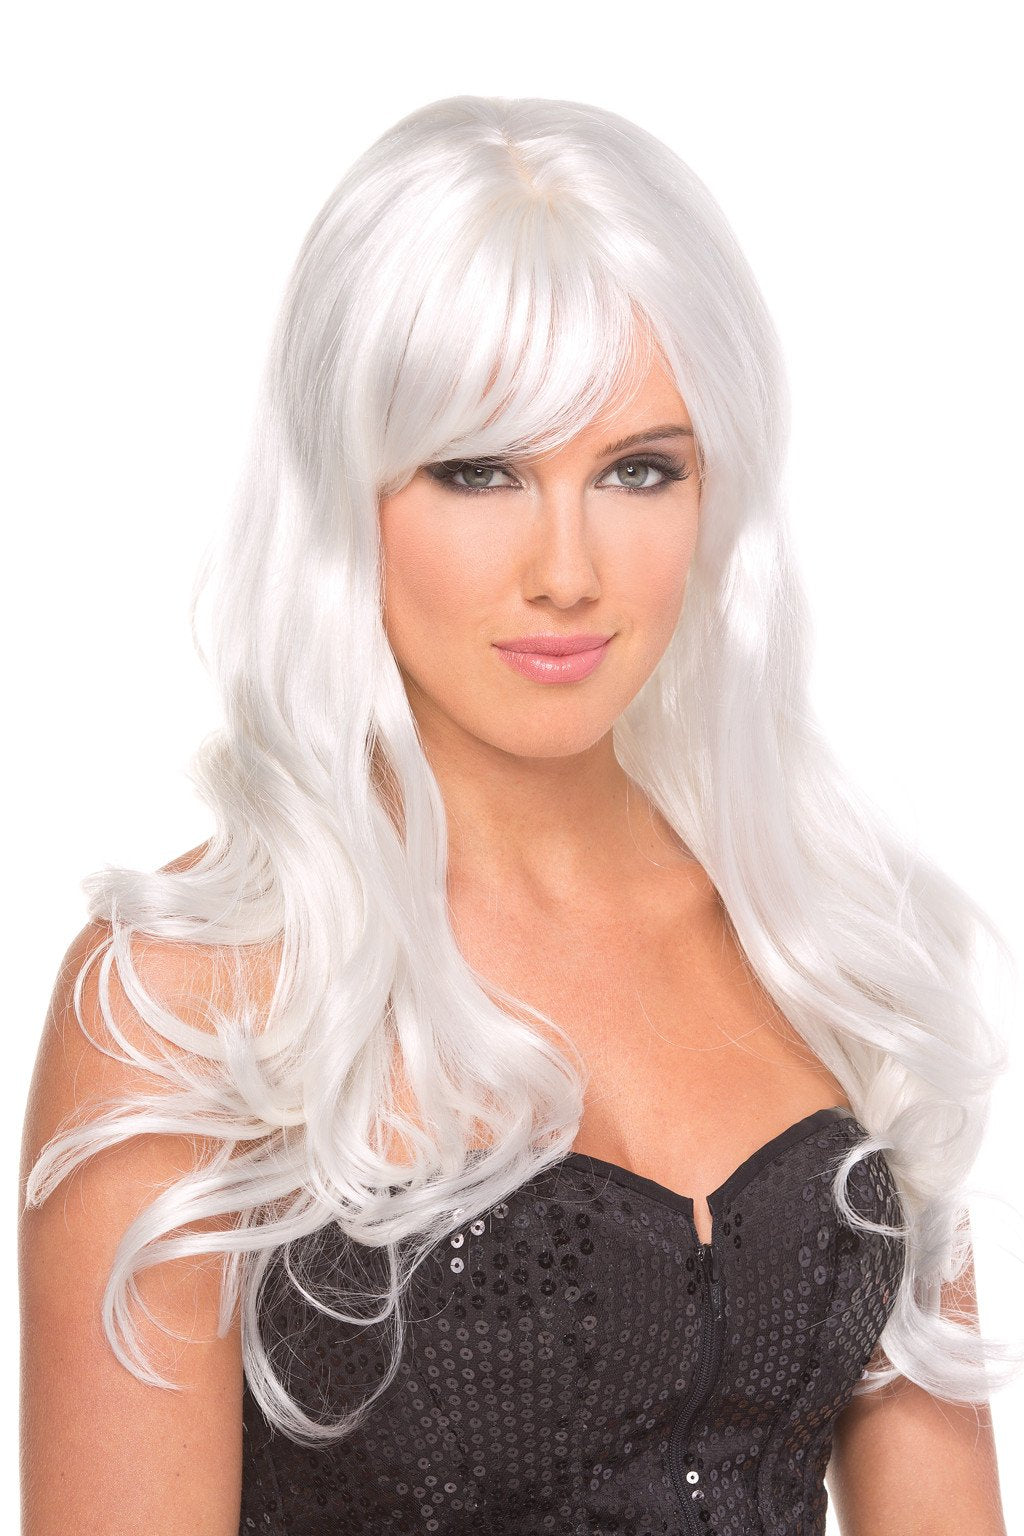 LALA TRENDS Be Wicked Burlesque Wig White Wigs $29.95